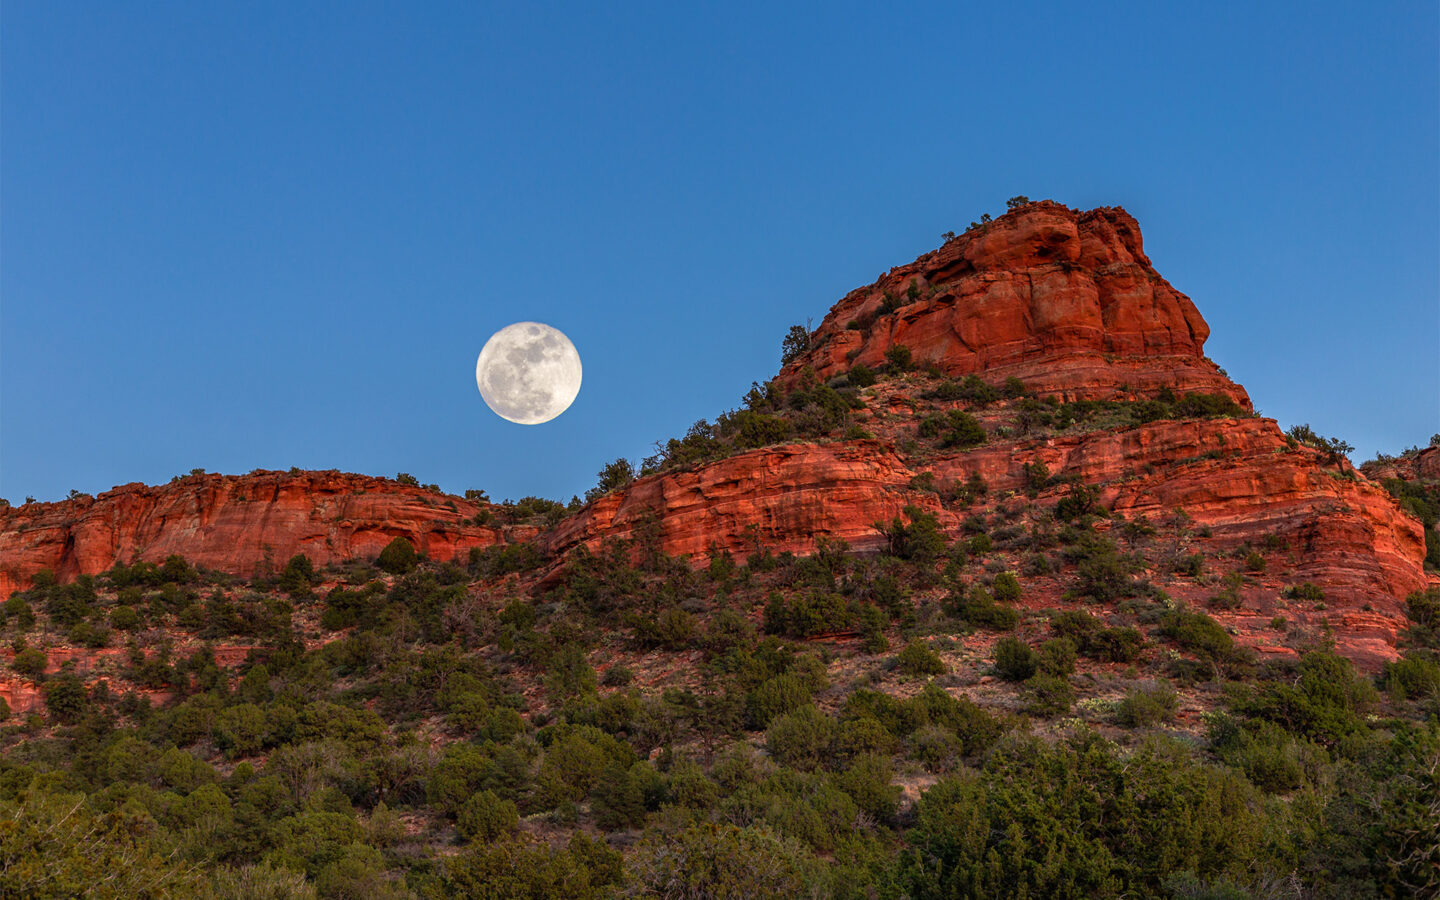 full moon rising over Sedona red rocks